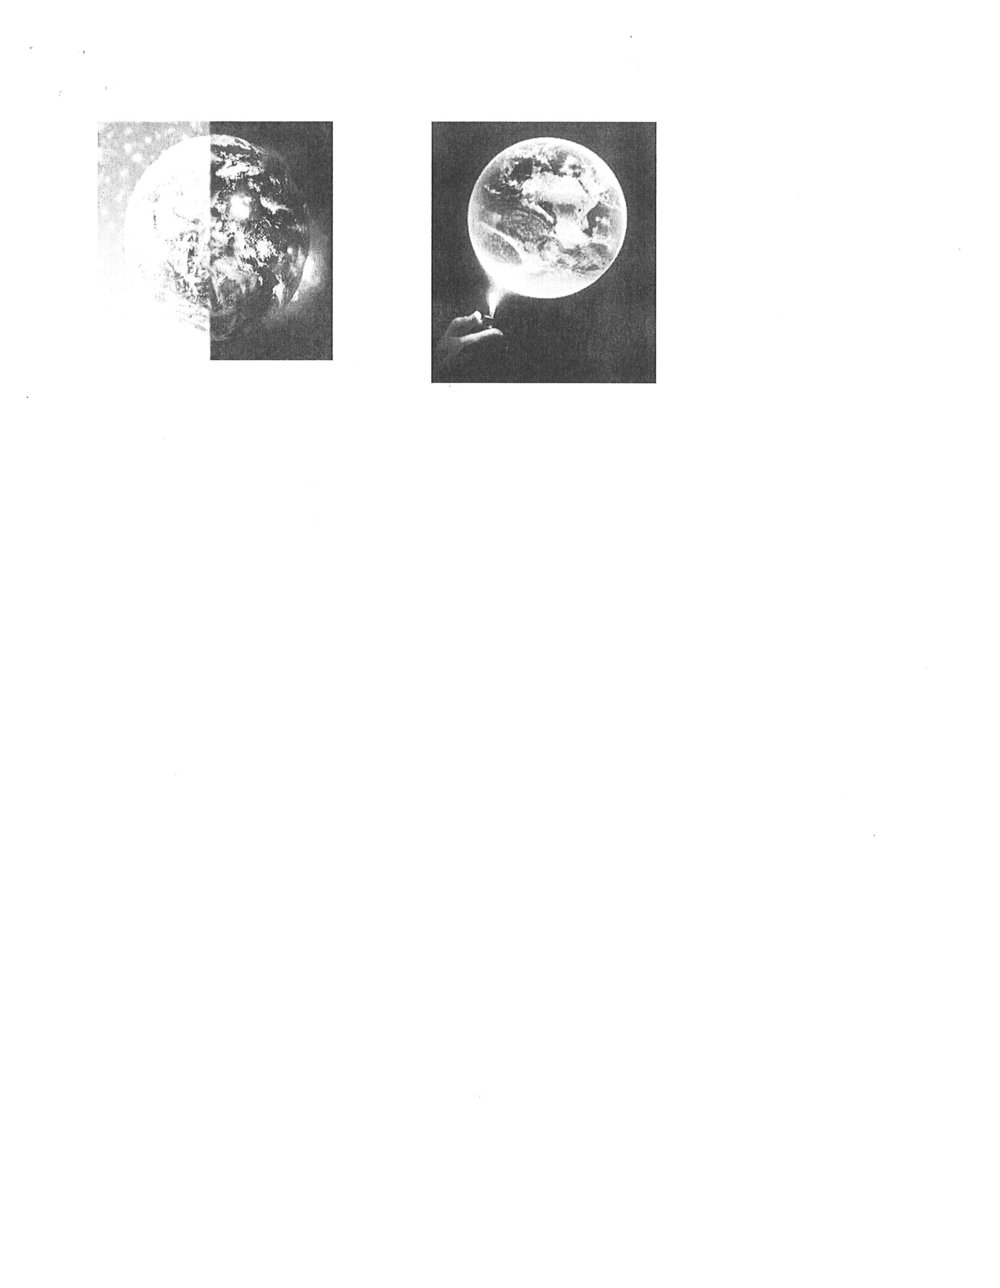 7. Scanned from a Xerox Multifunction Printer002.jpg